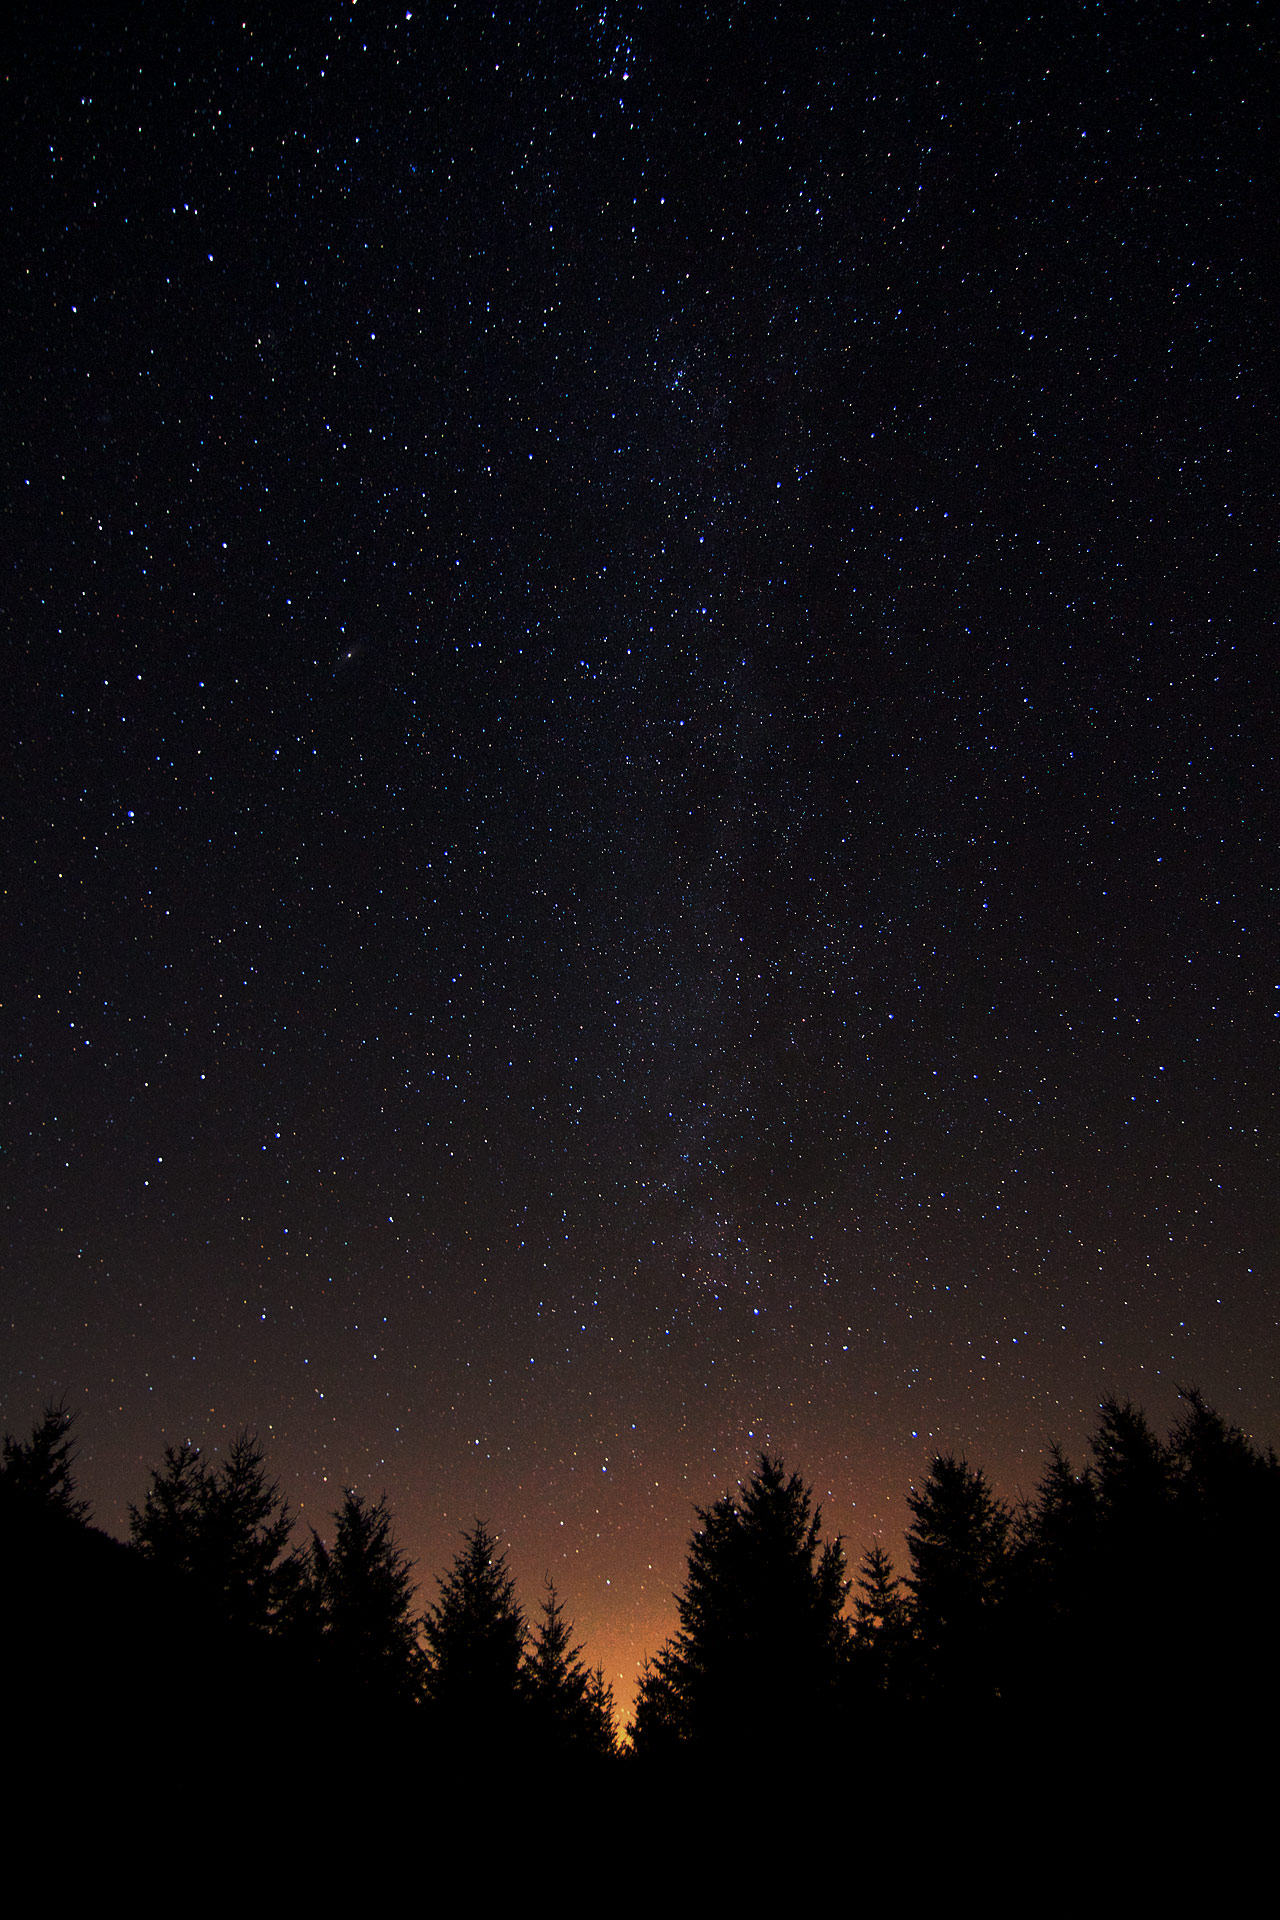 The_Milky_Way_over_Seattle.jpg